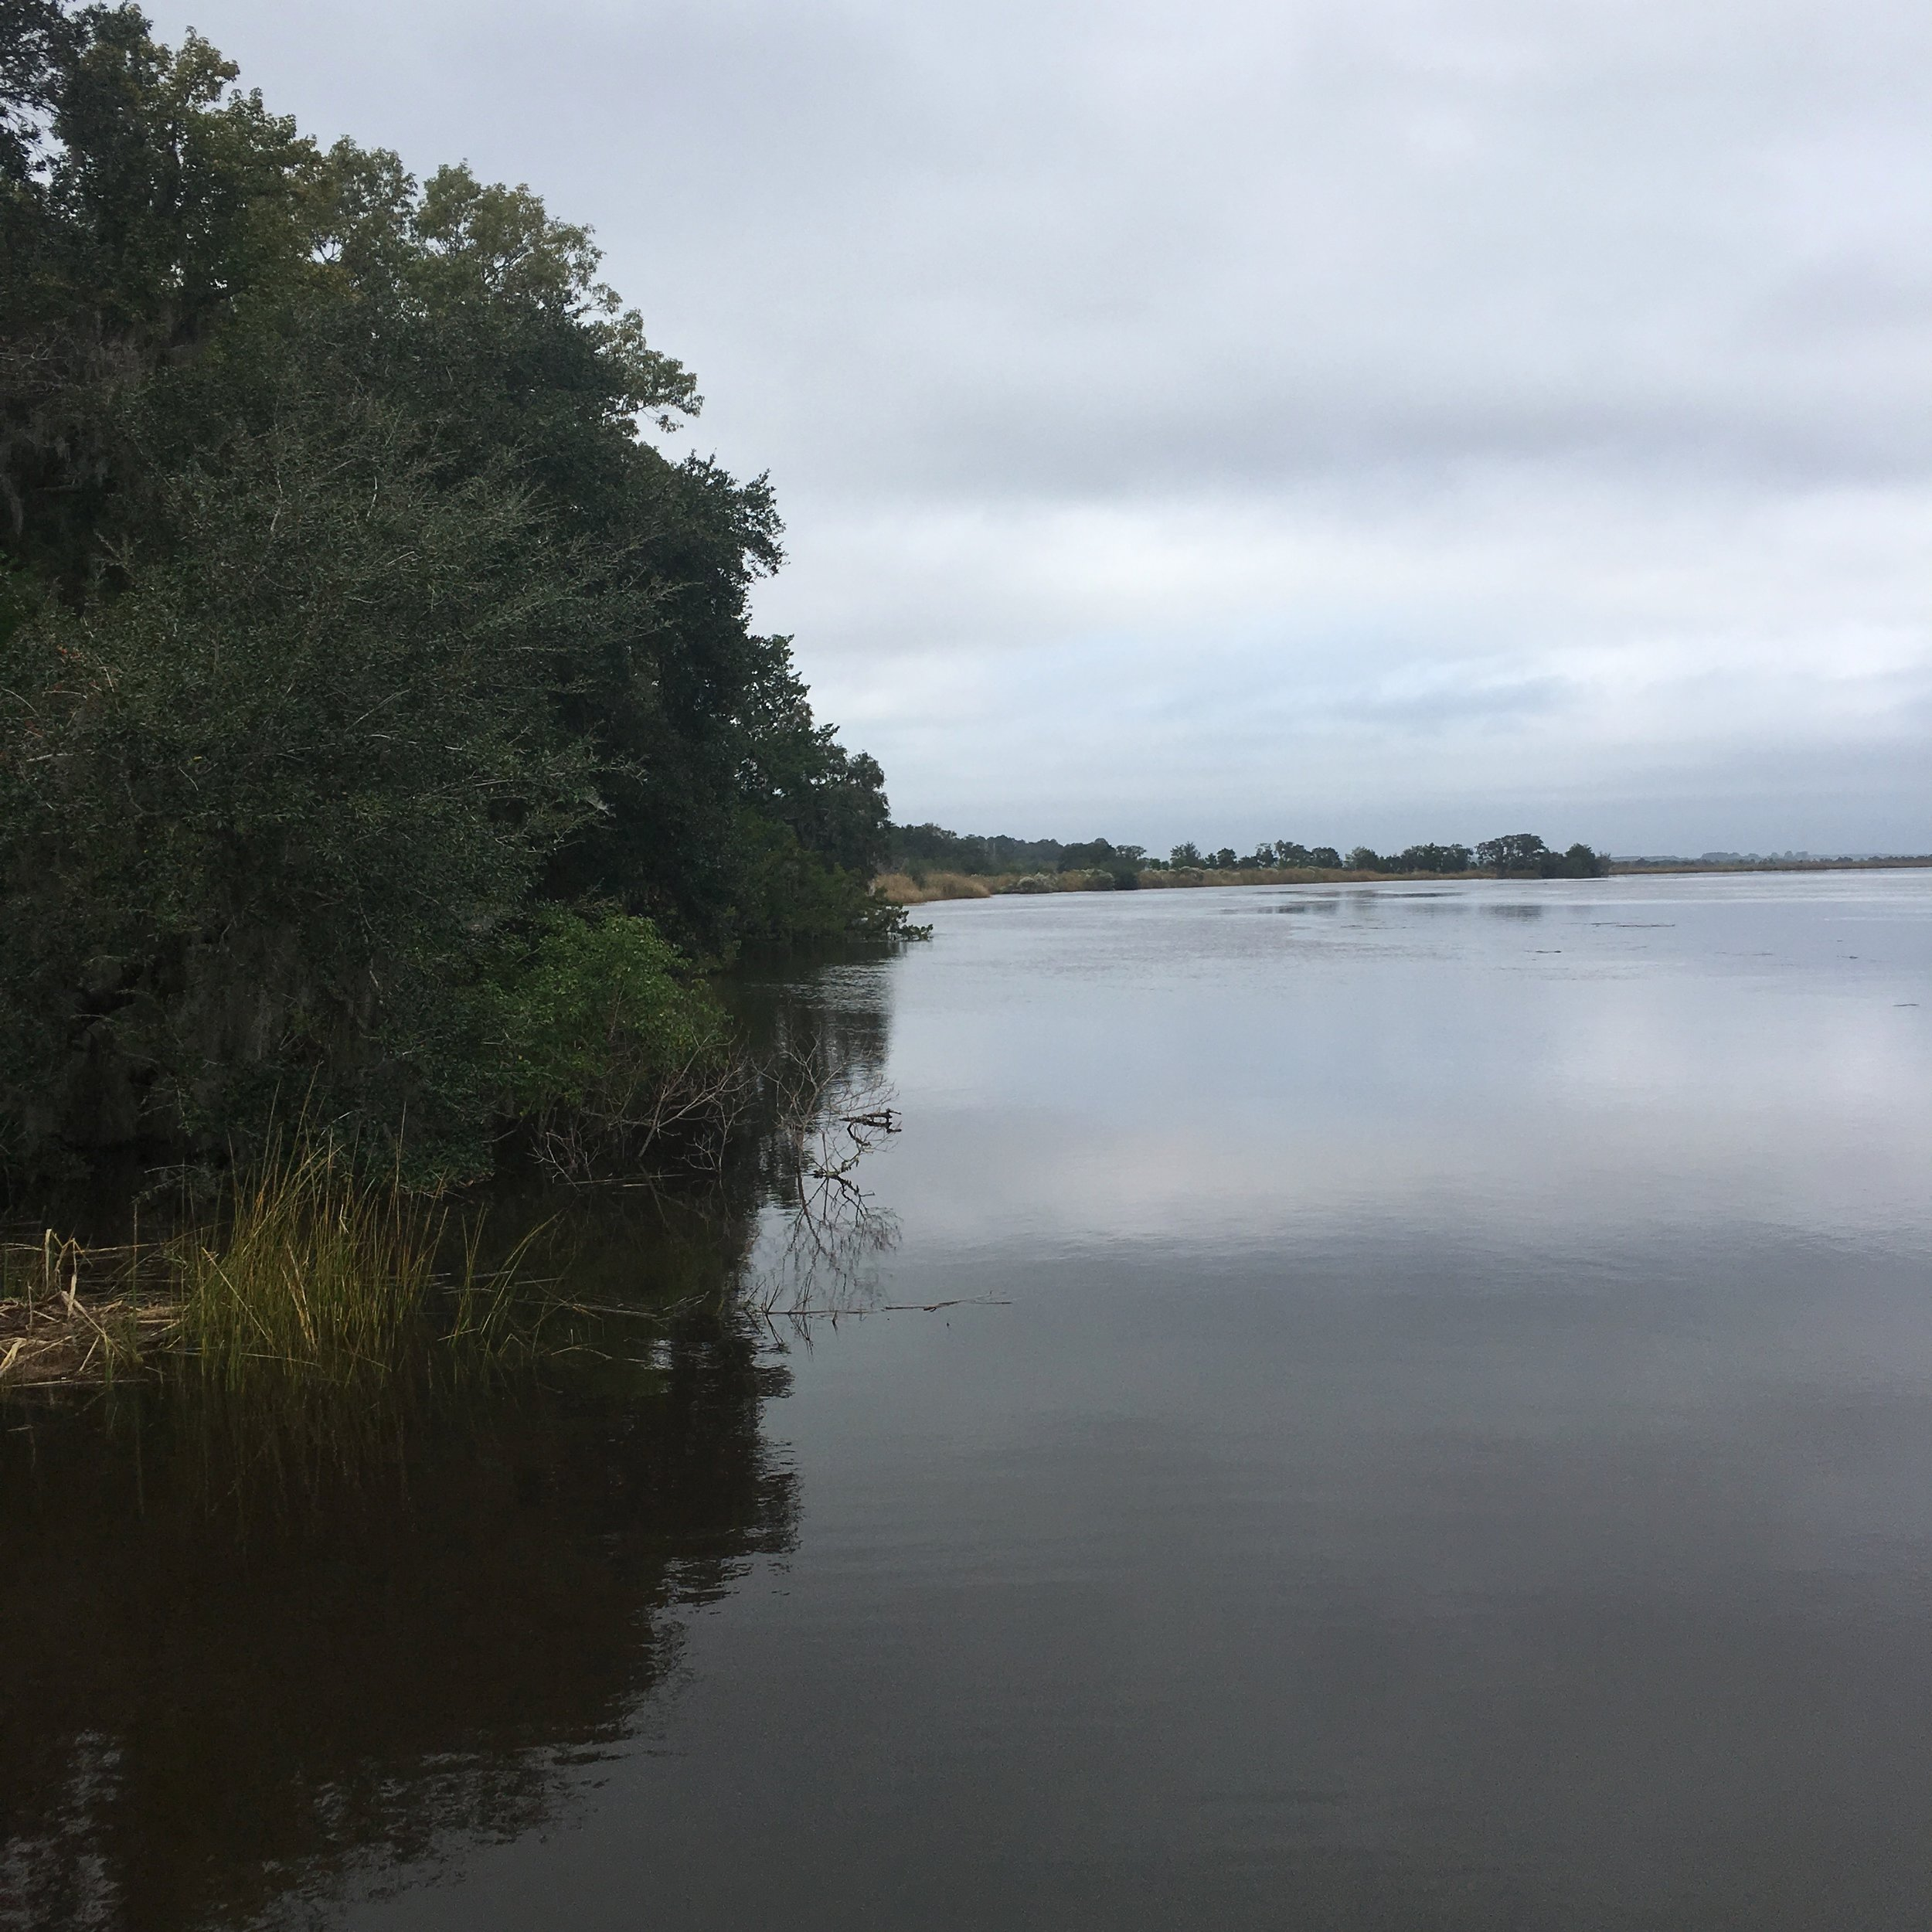 The Combahee River: on a recent road trip, I made my husband pull over into a tiny fisherman's parking lot because I thought the spot looked pretty. Lo and behold, there was a sign about Harriet's river raid! It was fate, I tell you.